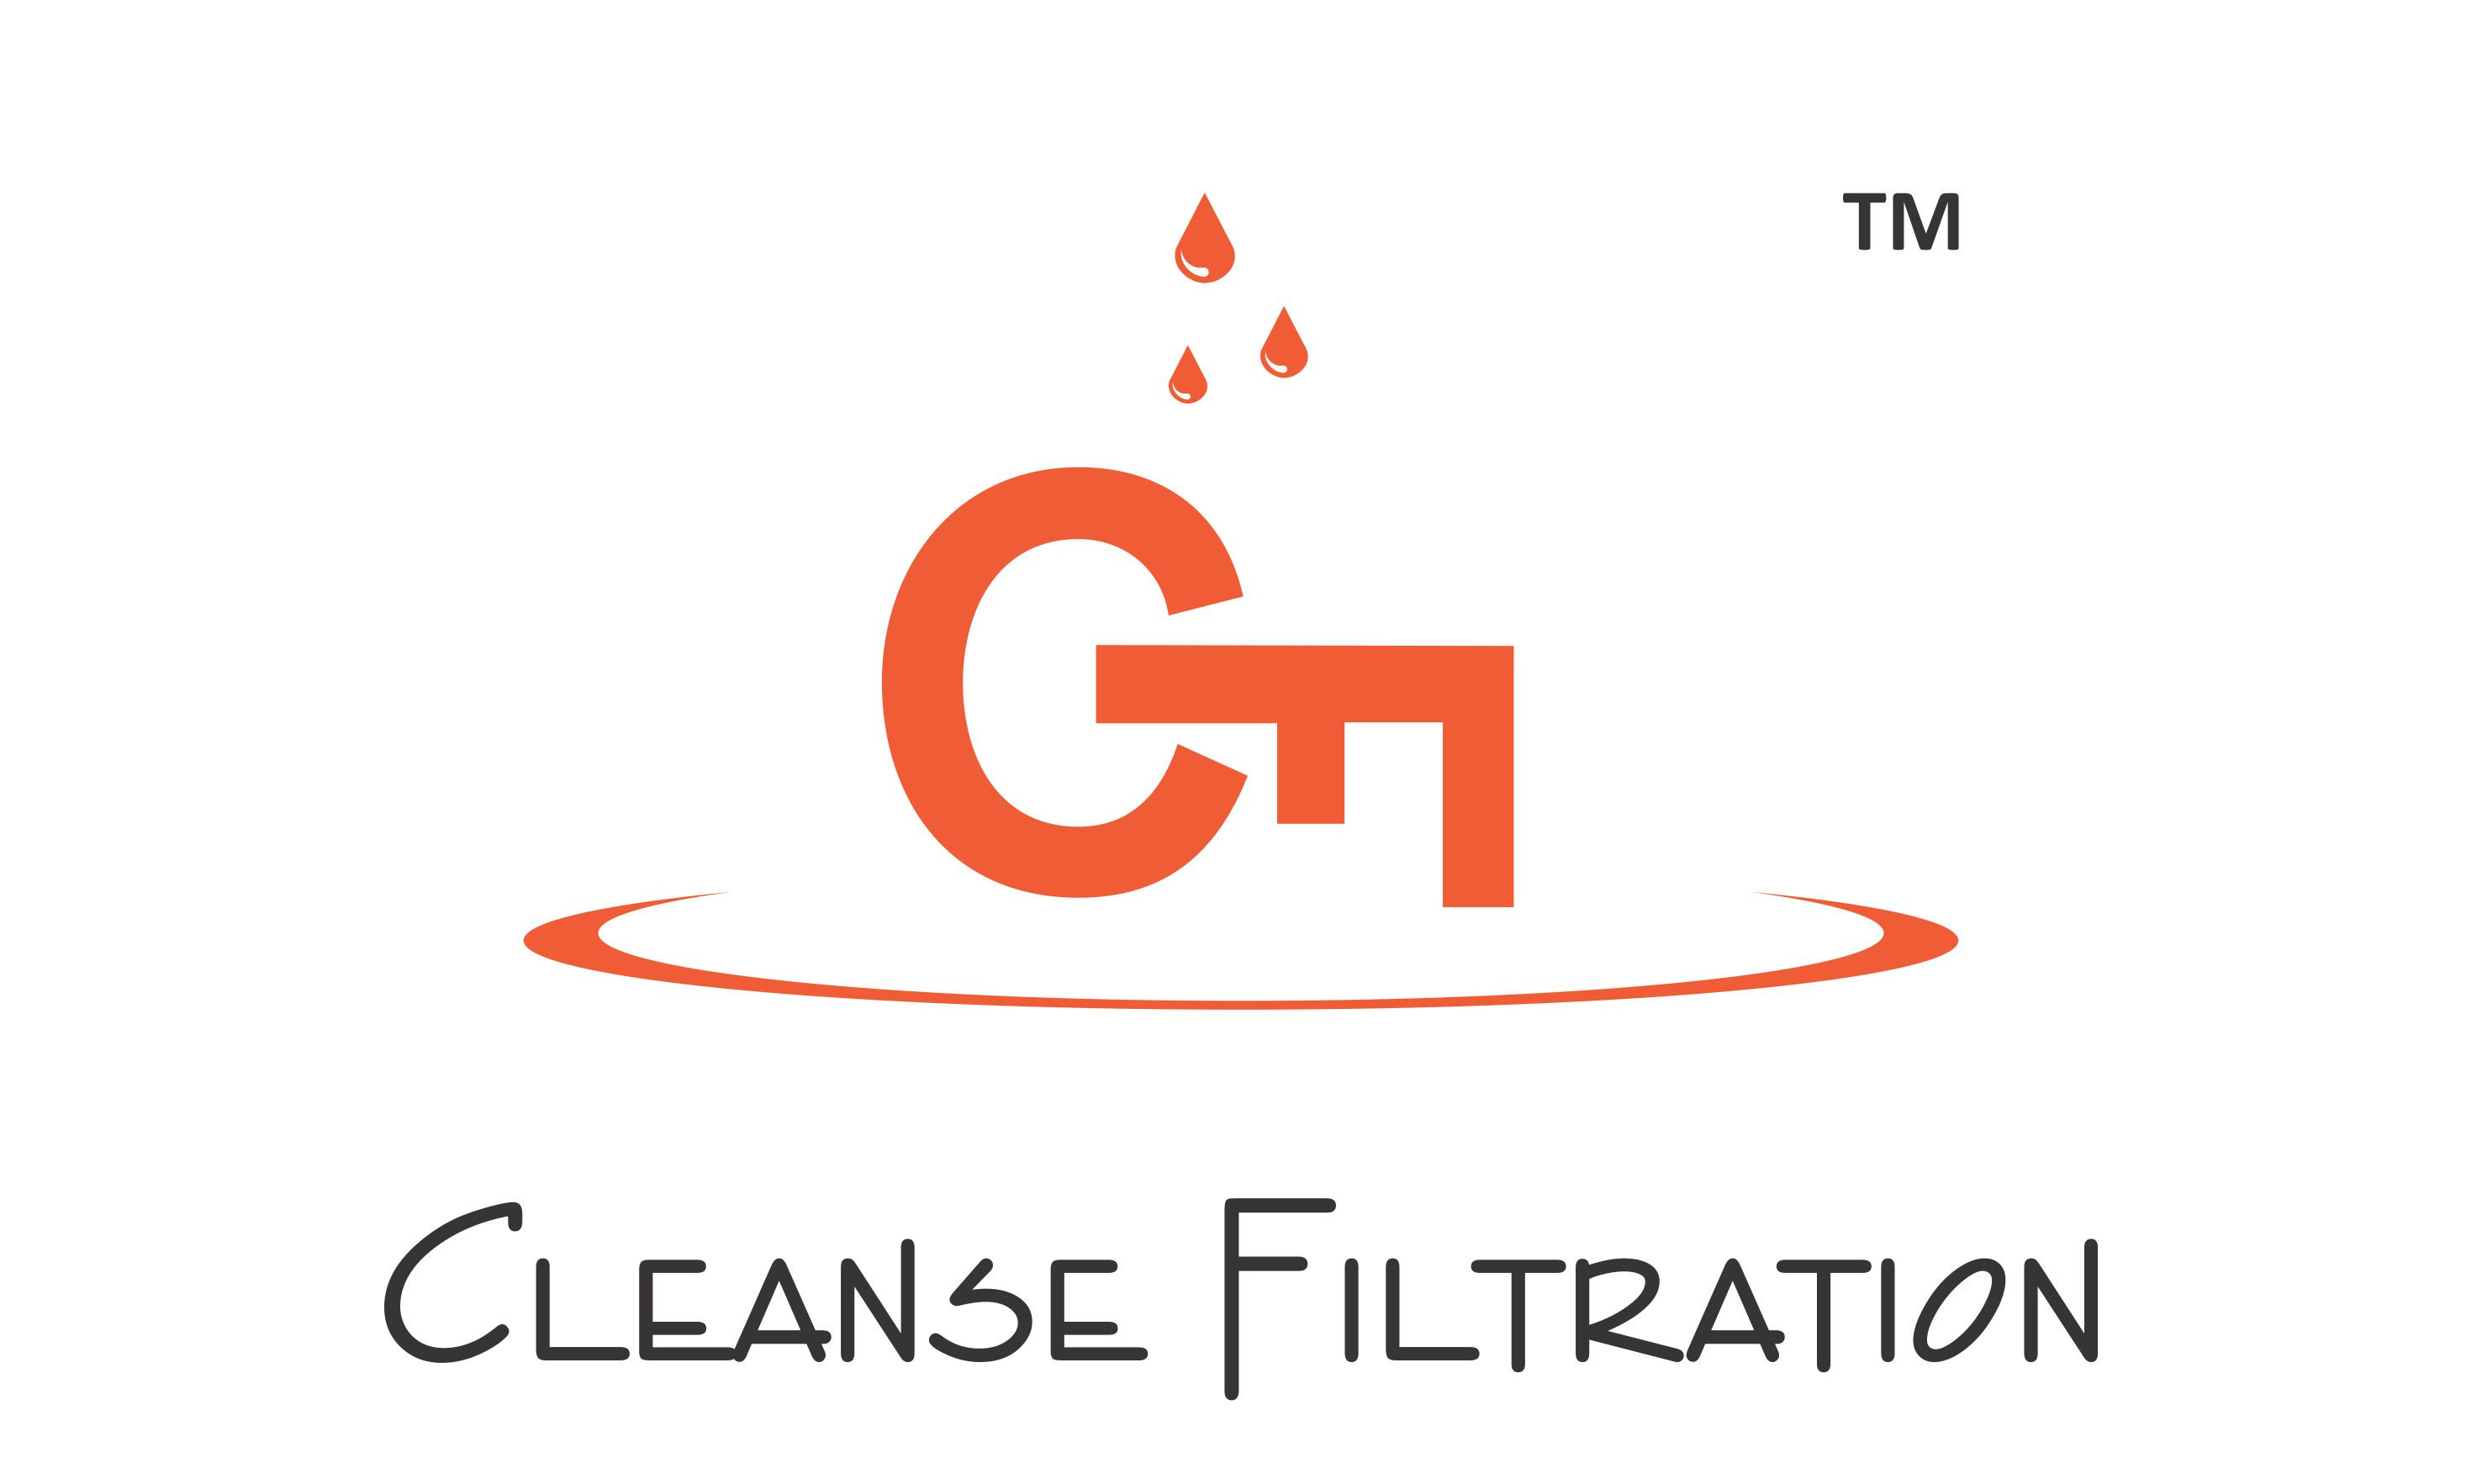 Cleanse Filtration logo